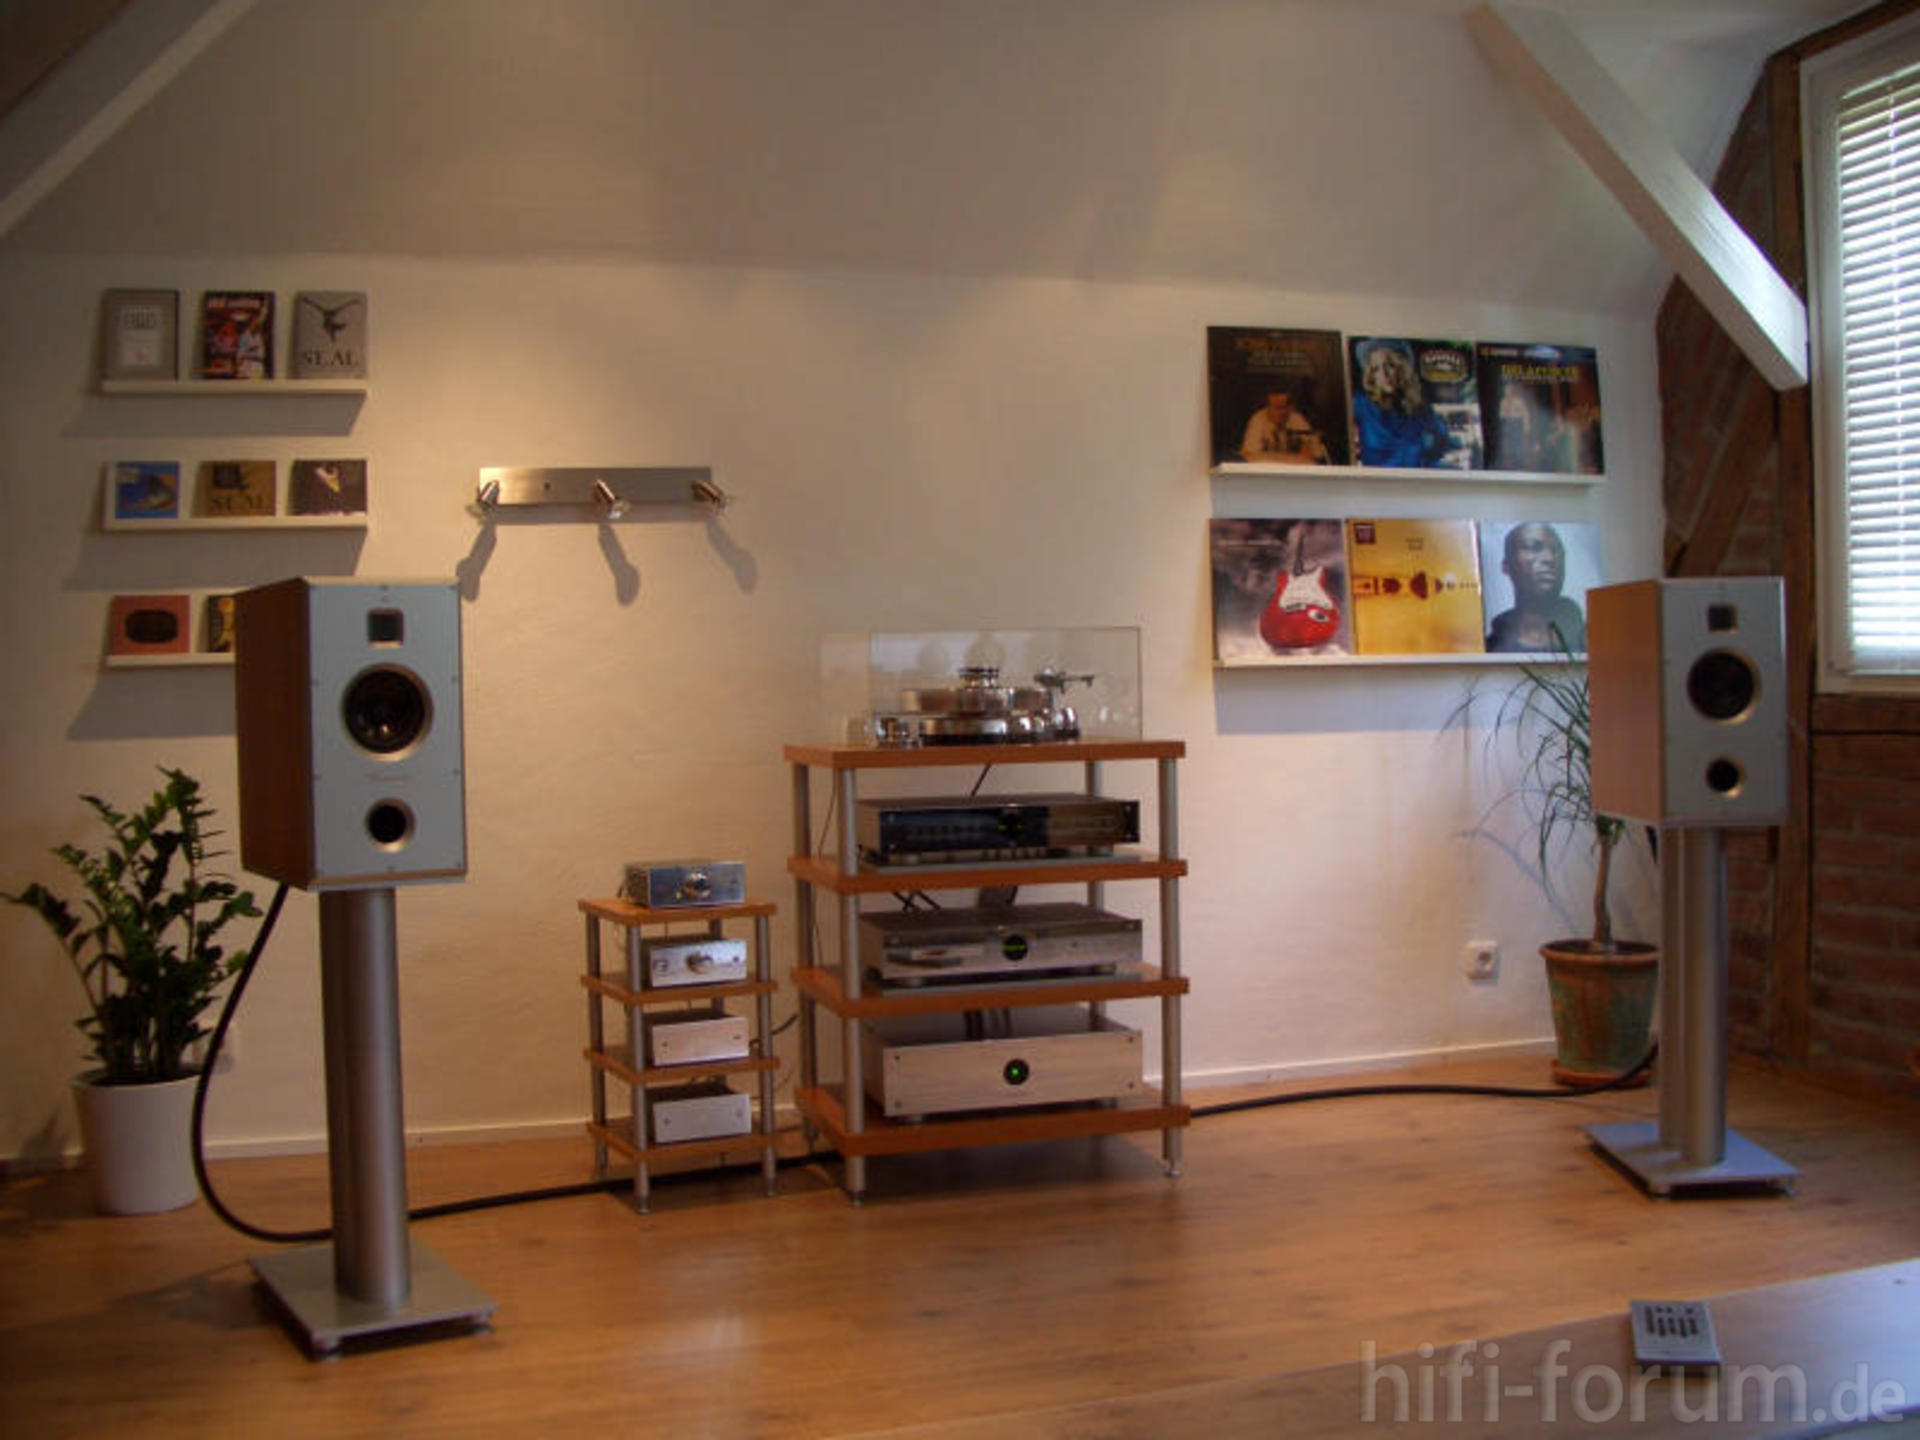 fuhrpark gesamt burmester fuhrpark gesamt stereo. Black Bedroom Furniture Sets. Home Design Ideas